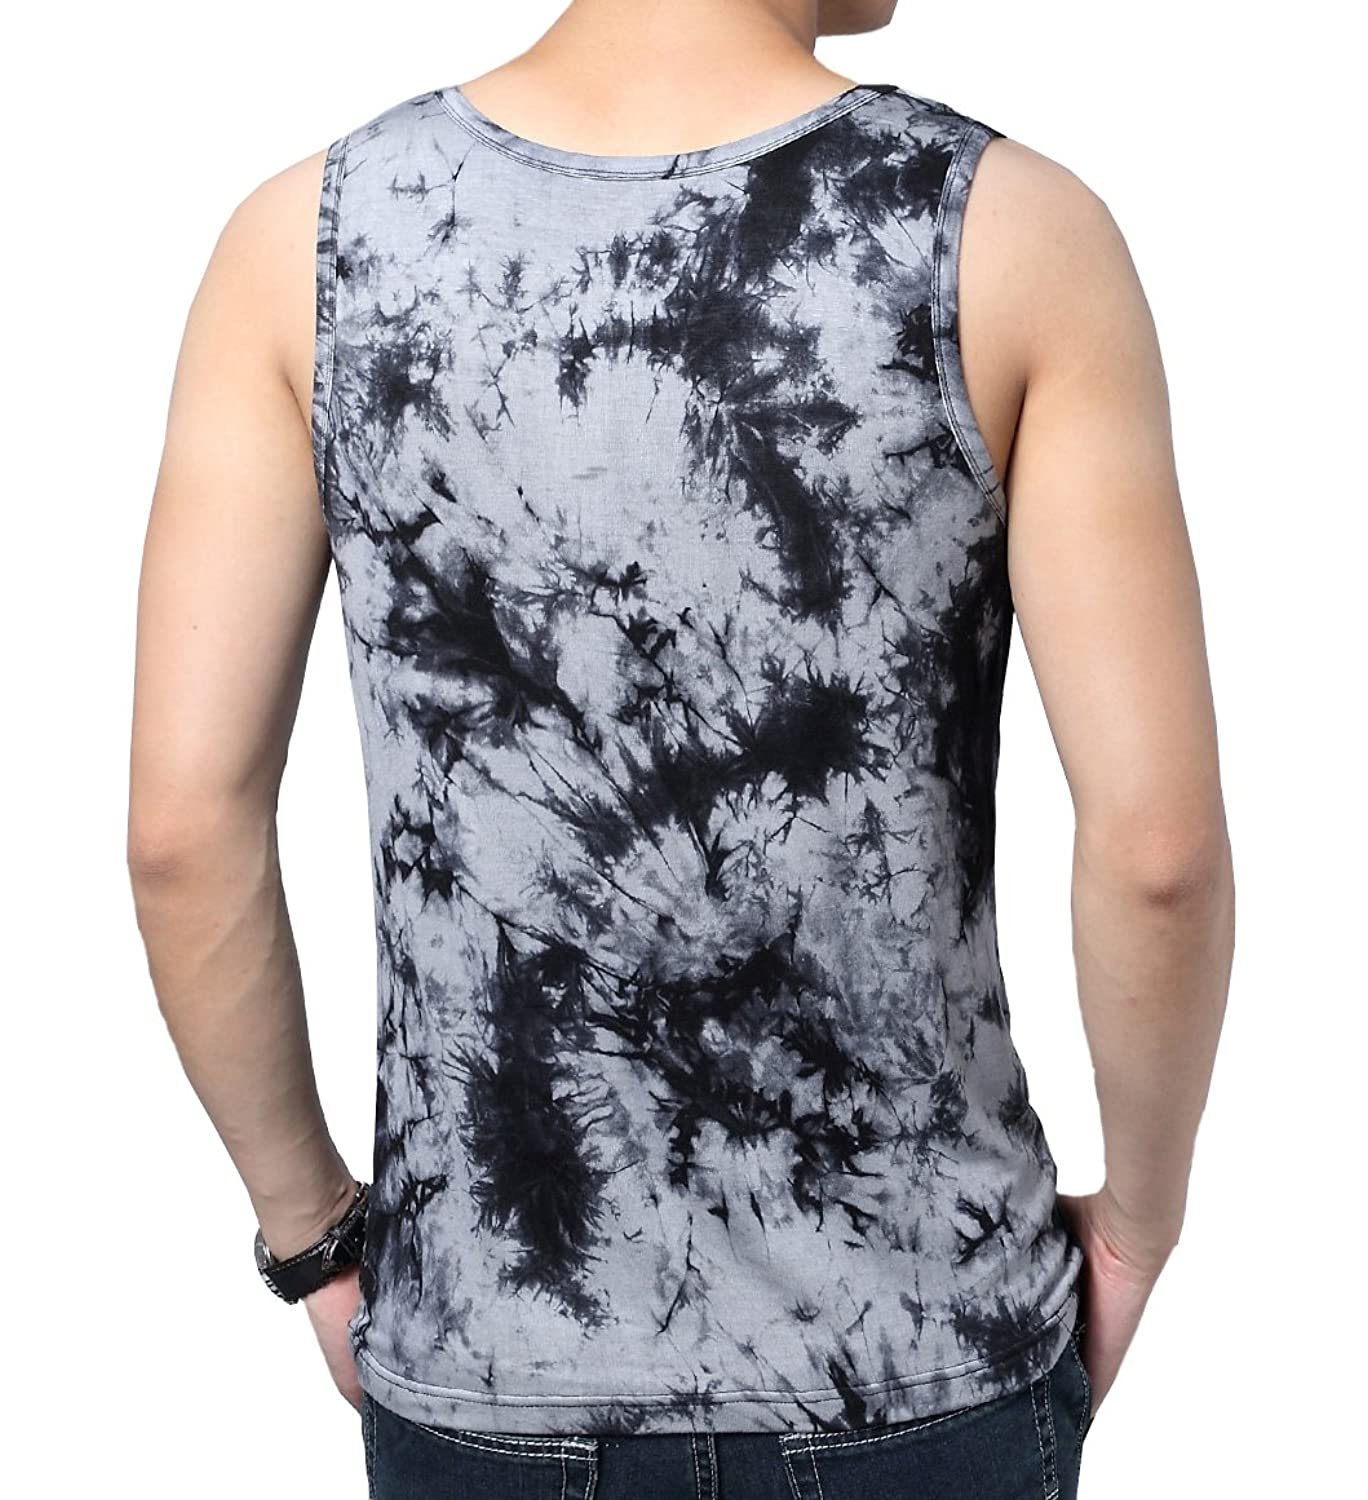 Shoppen Sie Ouye Herren Sommer Muscleshirt Athletic Tank Top Unterhemden  auf Amazon.de:Tops